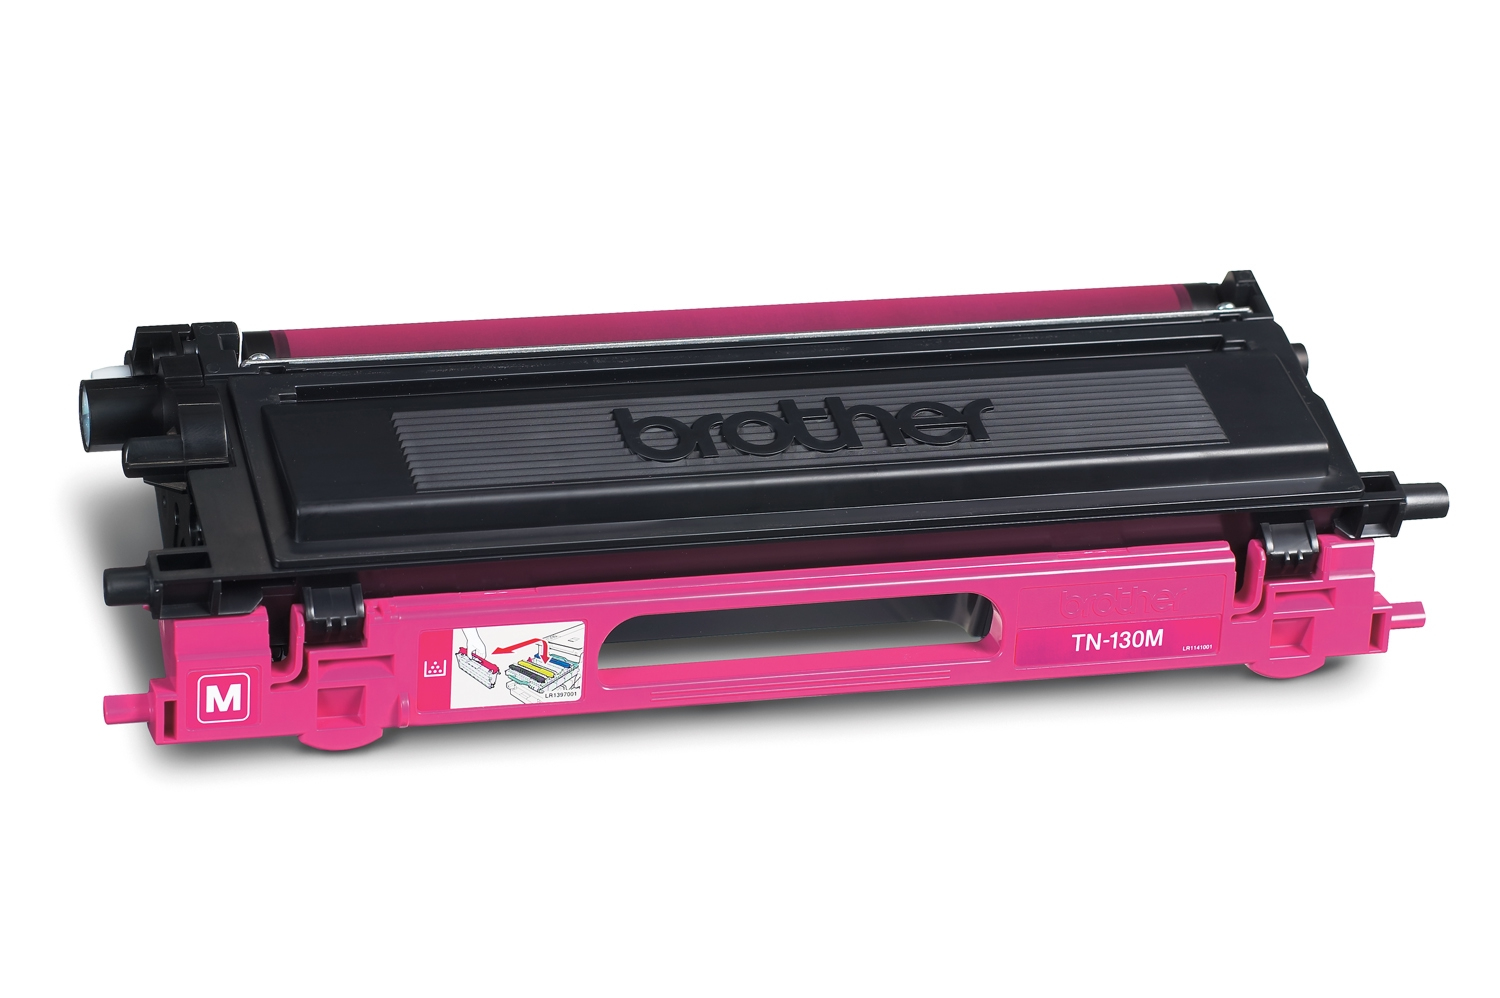 Tn130m brother Magent Toner Dcp9040/5 Mfc9440 1.5k - AD01